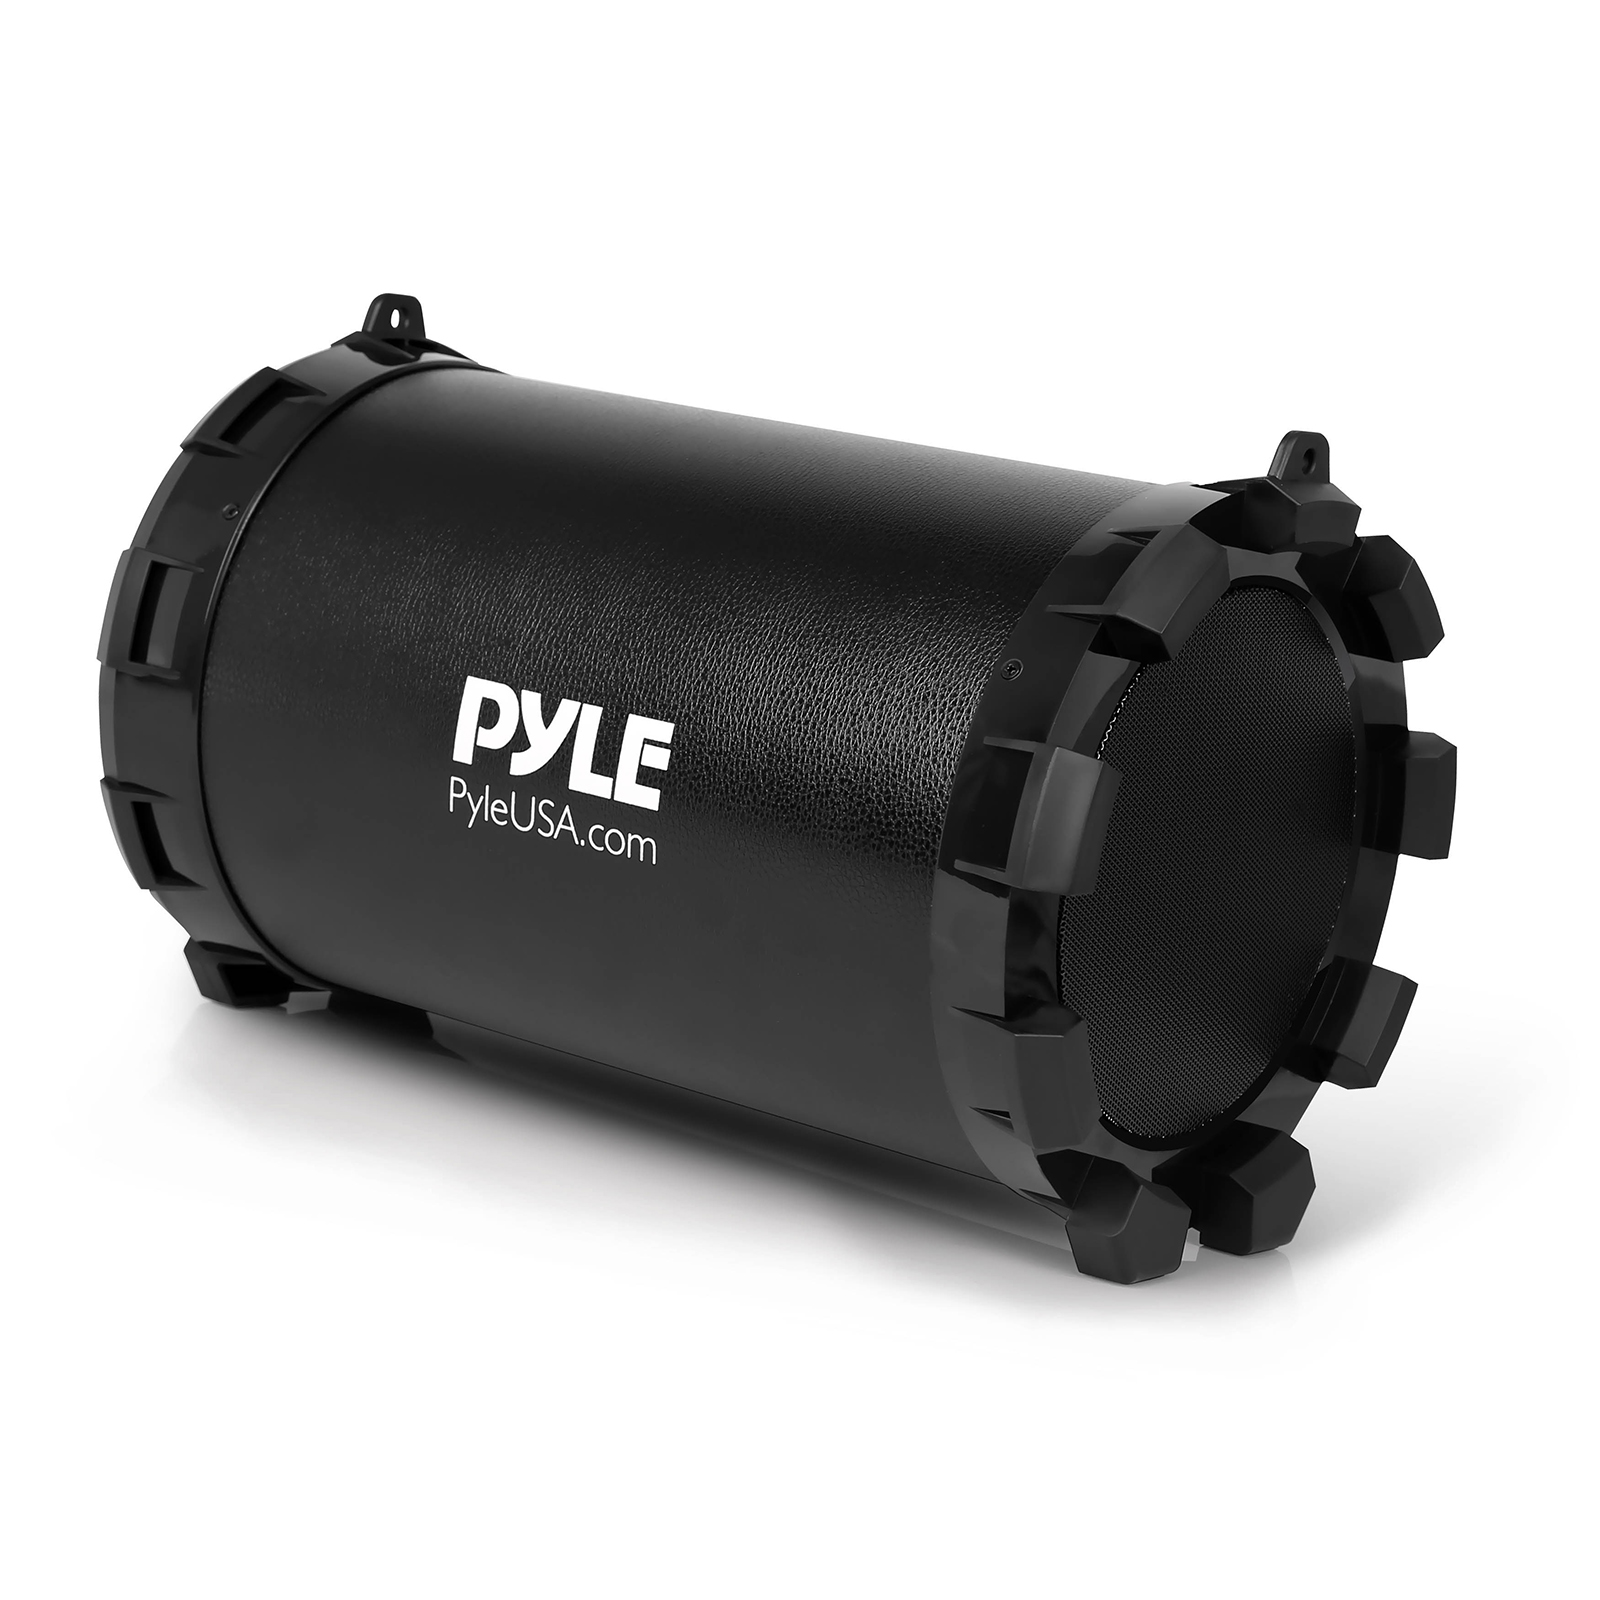 Pyle Portable BT BoomBox Stereo System, Built-in Battery, USB/SD/FM Radio